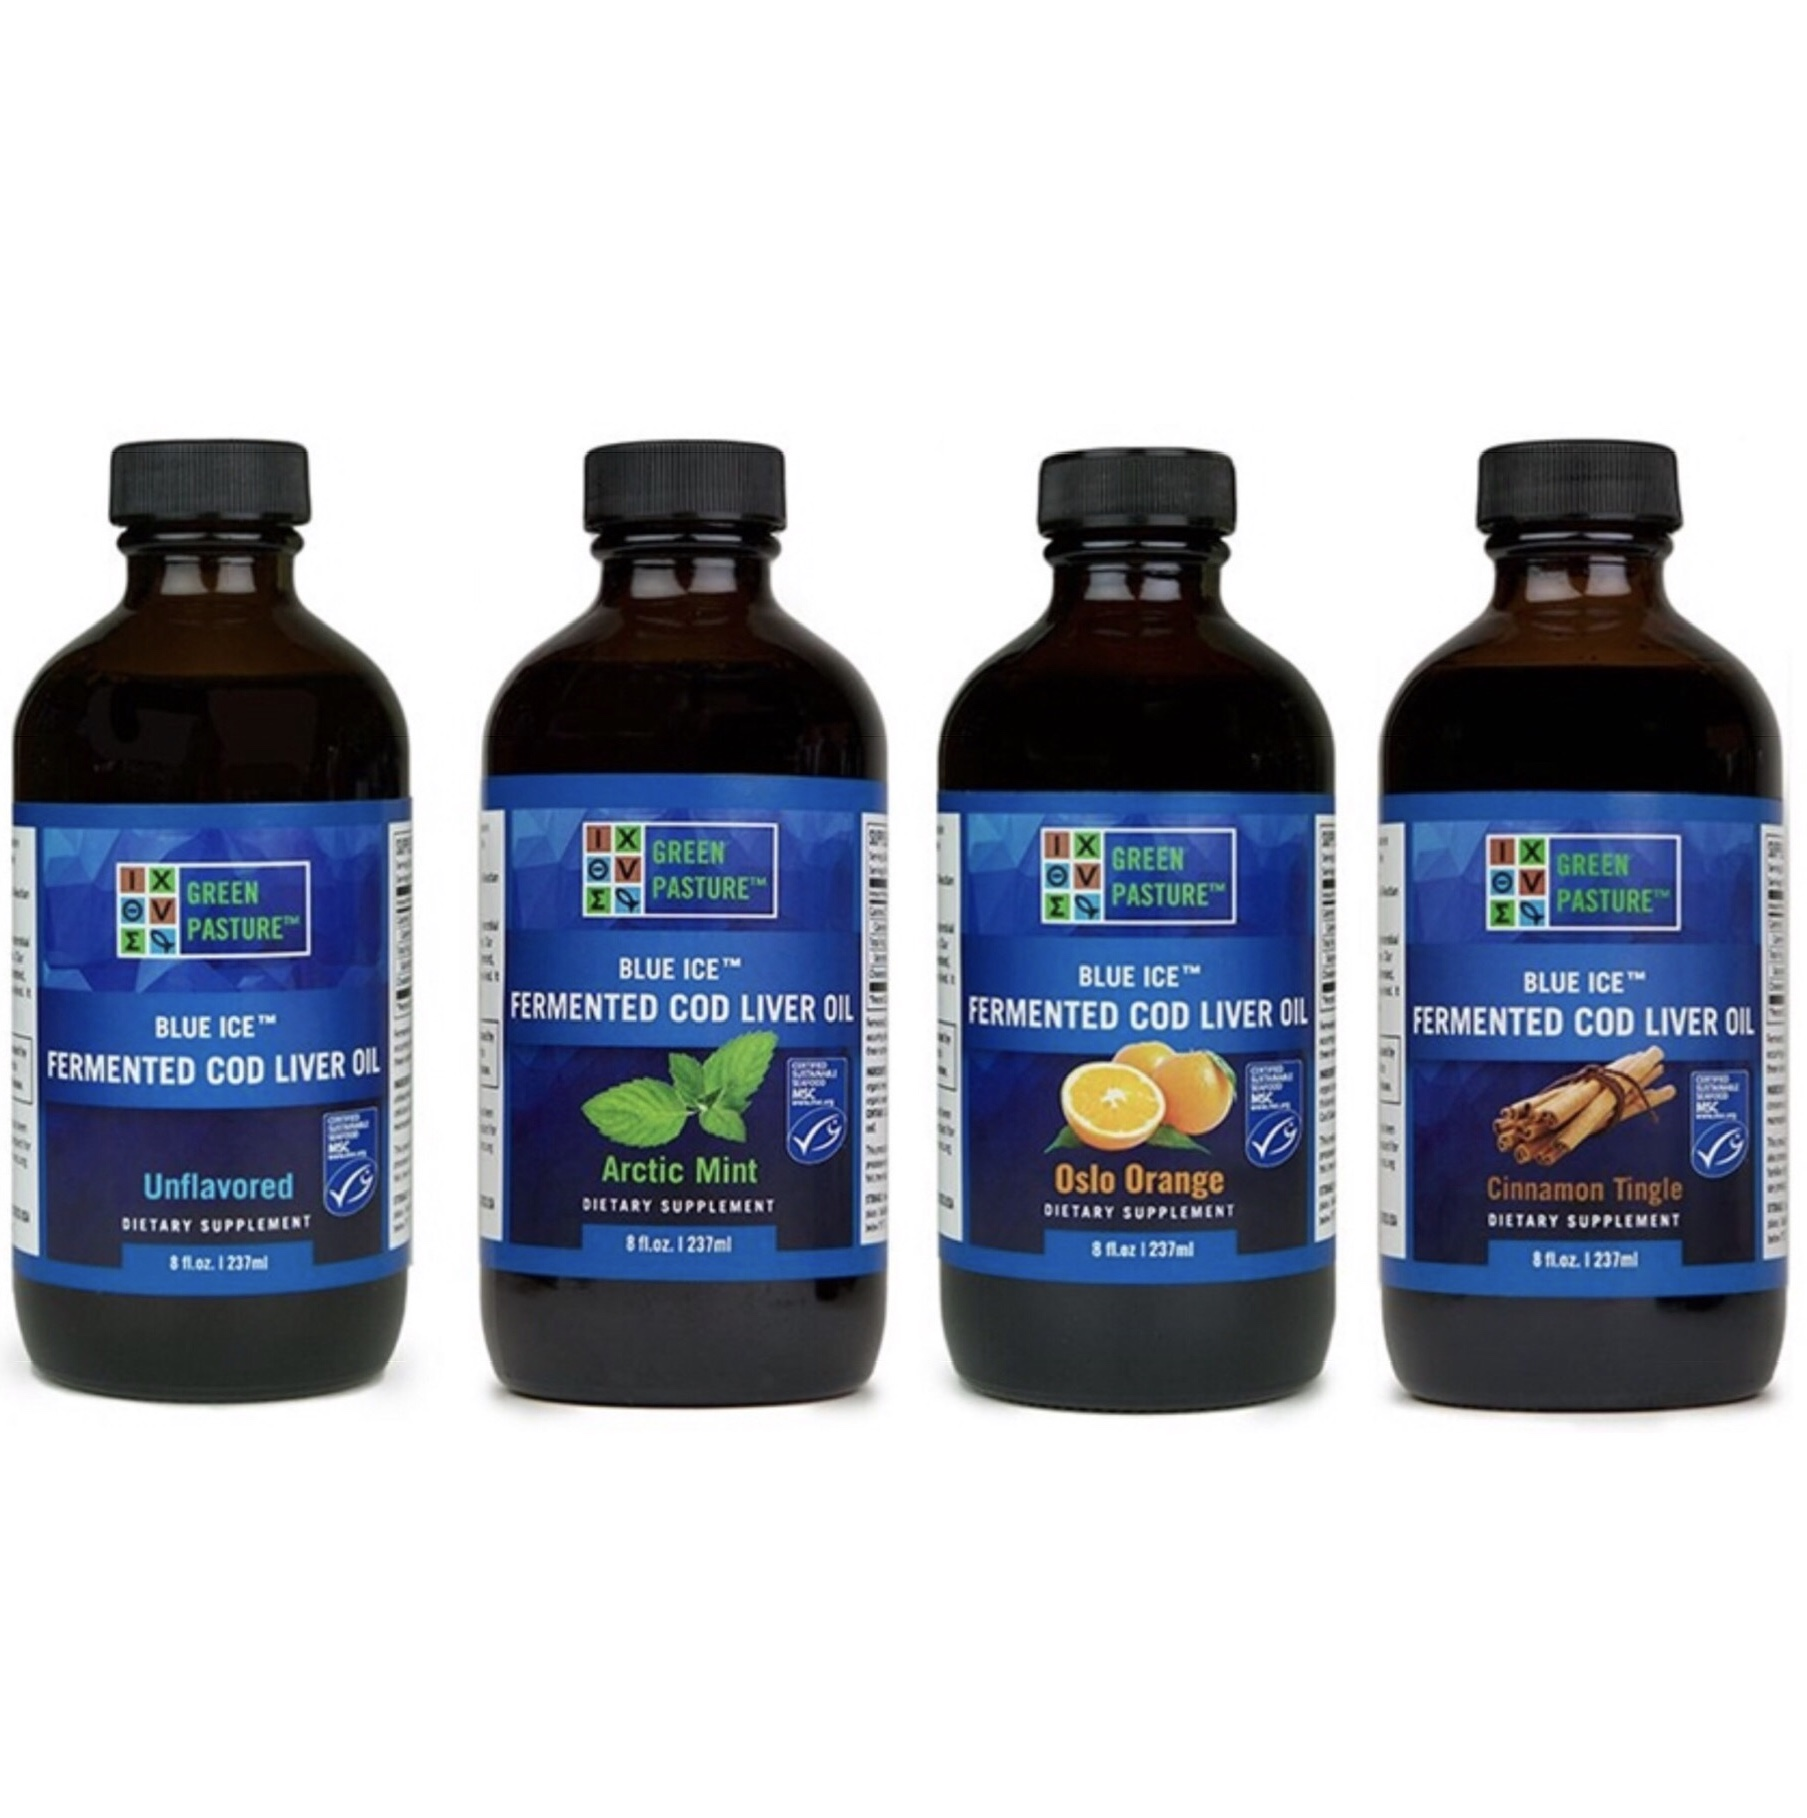 GREEN PASTURE Blue Ice Fermented Cod Liver Oil - - high in Vitamins A and D,which are powerful antioxidants, and a great source of Omega-3 fatty acids- helps reduce inflammation, neutralize free radicals, improve arthritis symptoms, reduce joint pain, lower risk of heart disease, and improve symptoms of anxiety and depression- supports strong,healthy bones- fermentation enhances nutrient bioavailability and preserves nutrient integrity- Take 1/2 tsp of fermented cod liver and 1/2 tsp of skate liver oil daily▶️ Click on the FLAVOR you prefer below 👇🐟Original 🌱Arctic Mint ✨Cinnamon Tingle 🍊Oslo Orange (my preference is Arctic Mint)